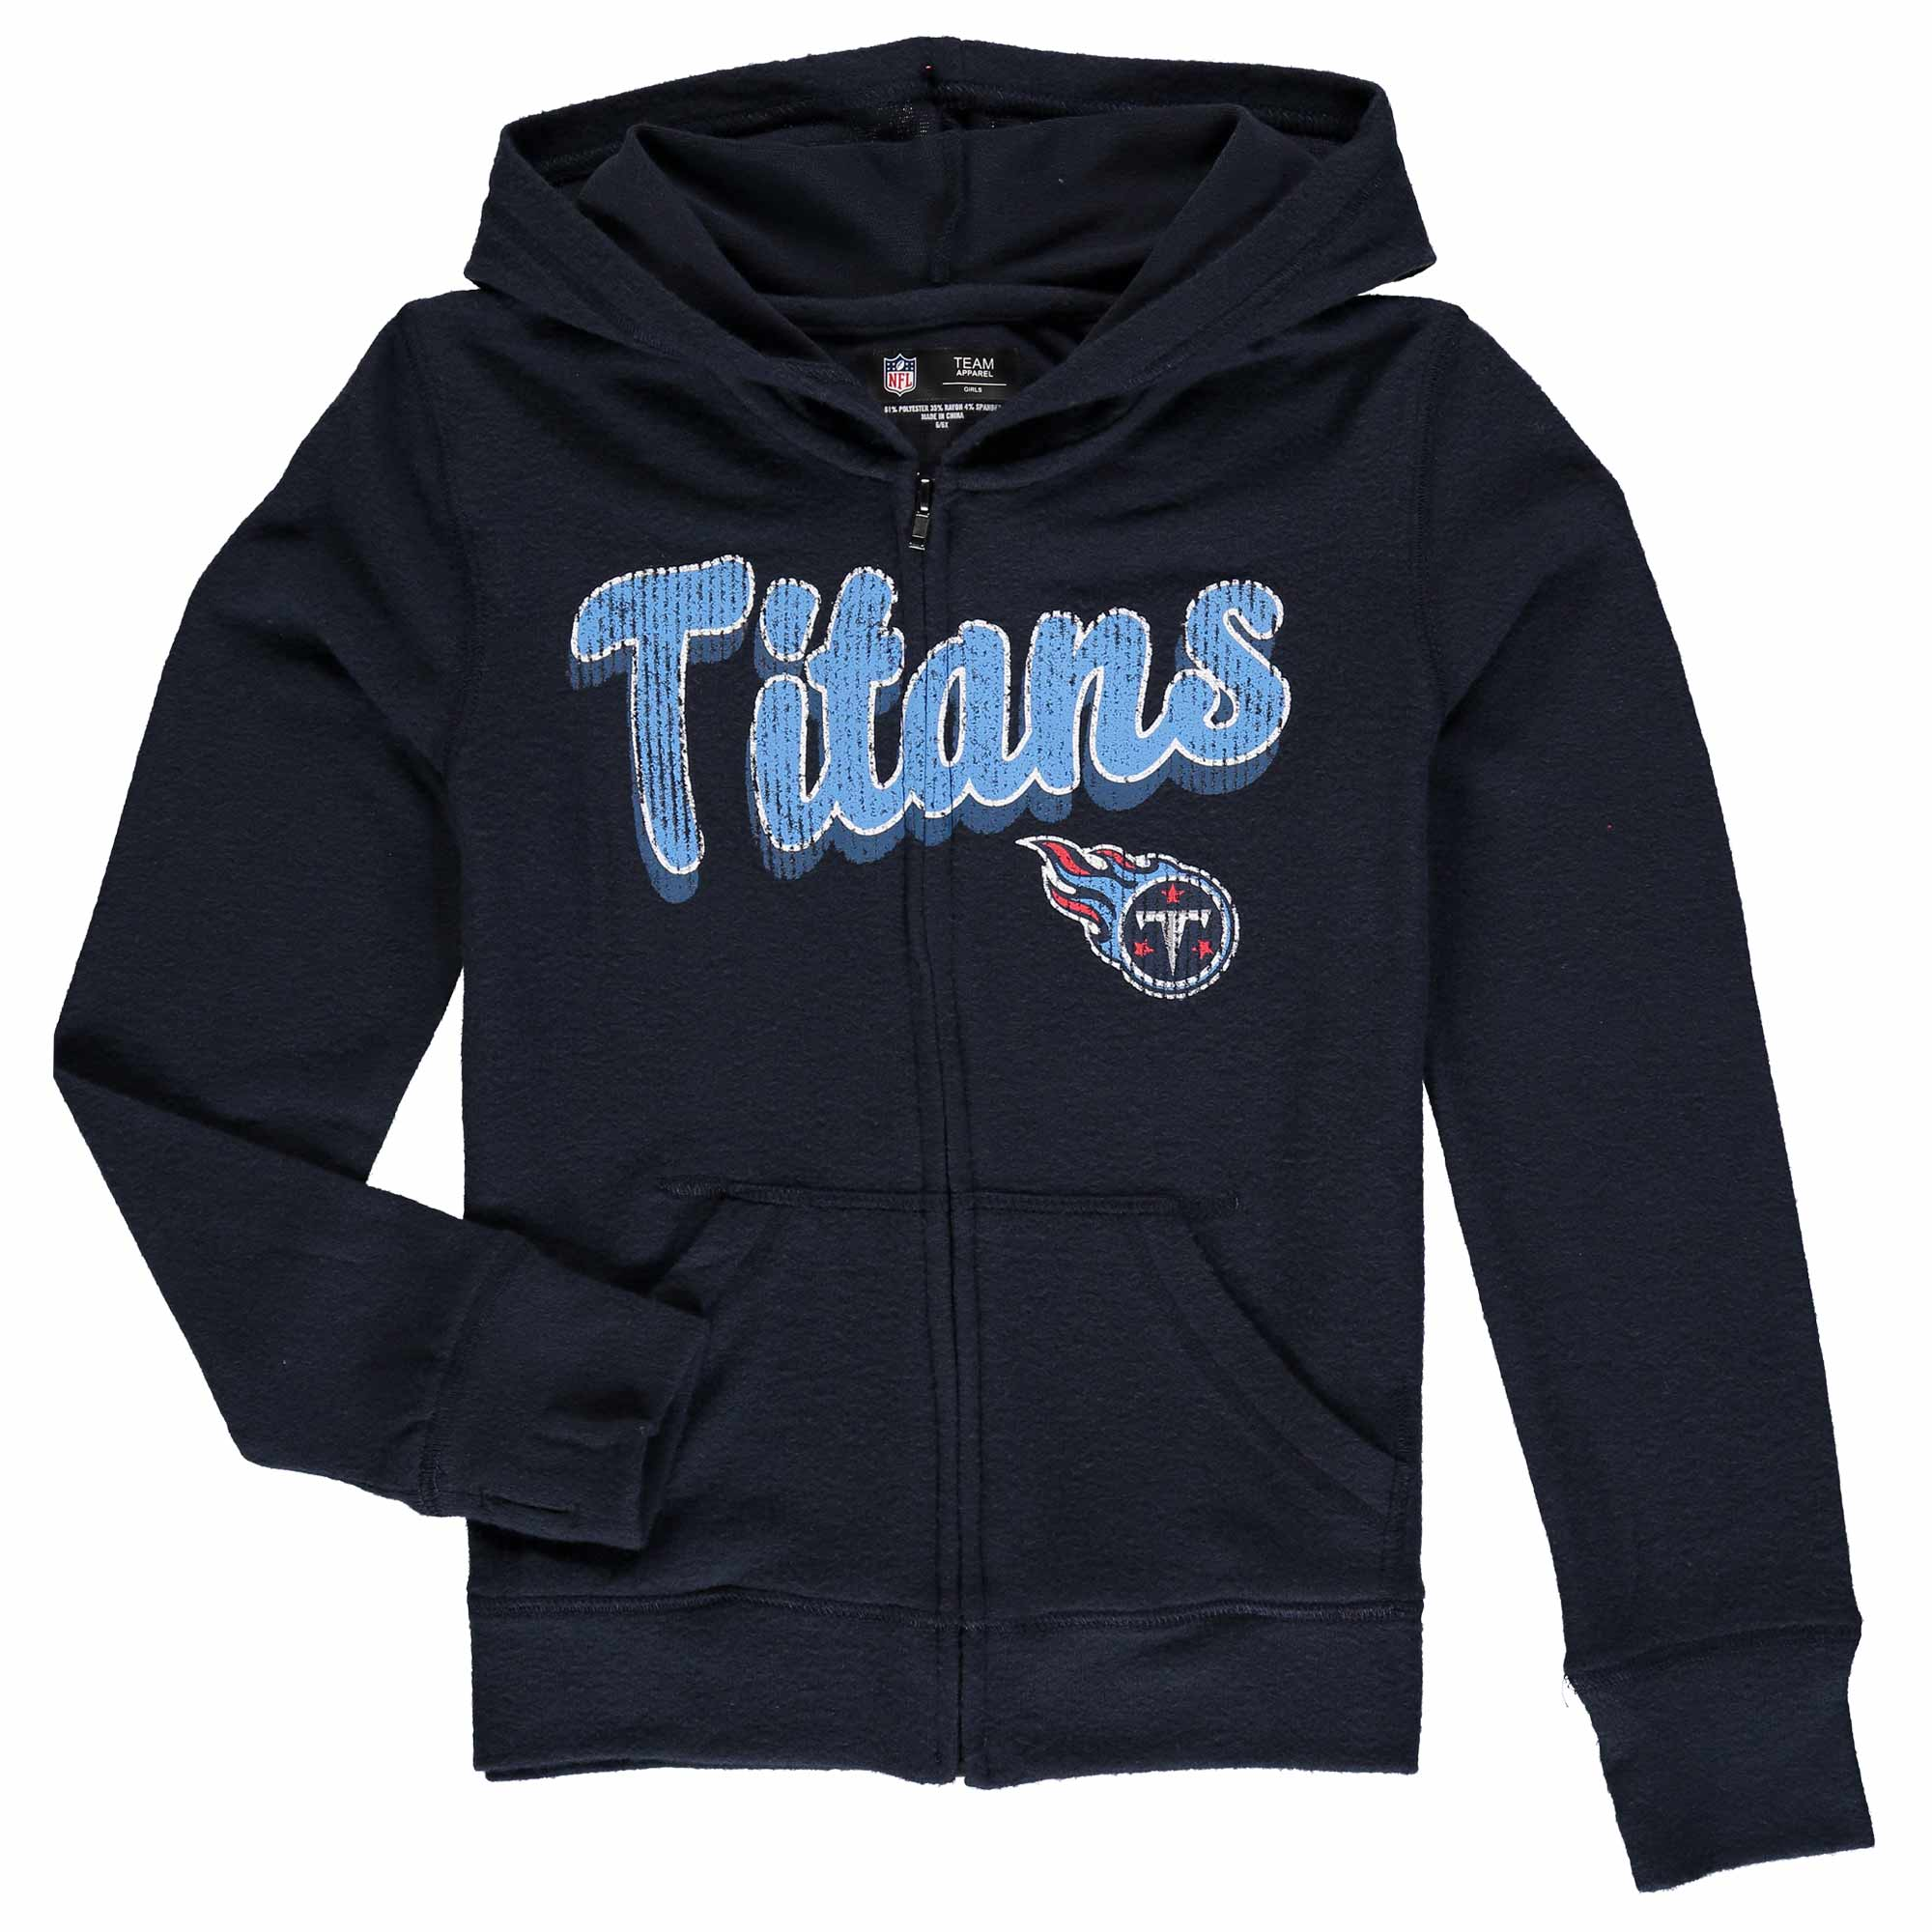 Tennessee Titans 5th & Ocean by New Era Girls Youth Brushed Knit Tri-Blend Full-Zip Hoodie - Navy